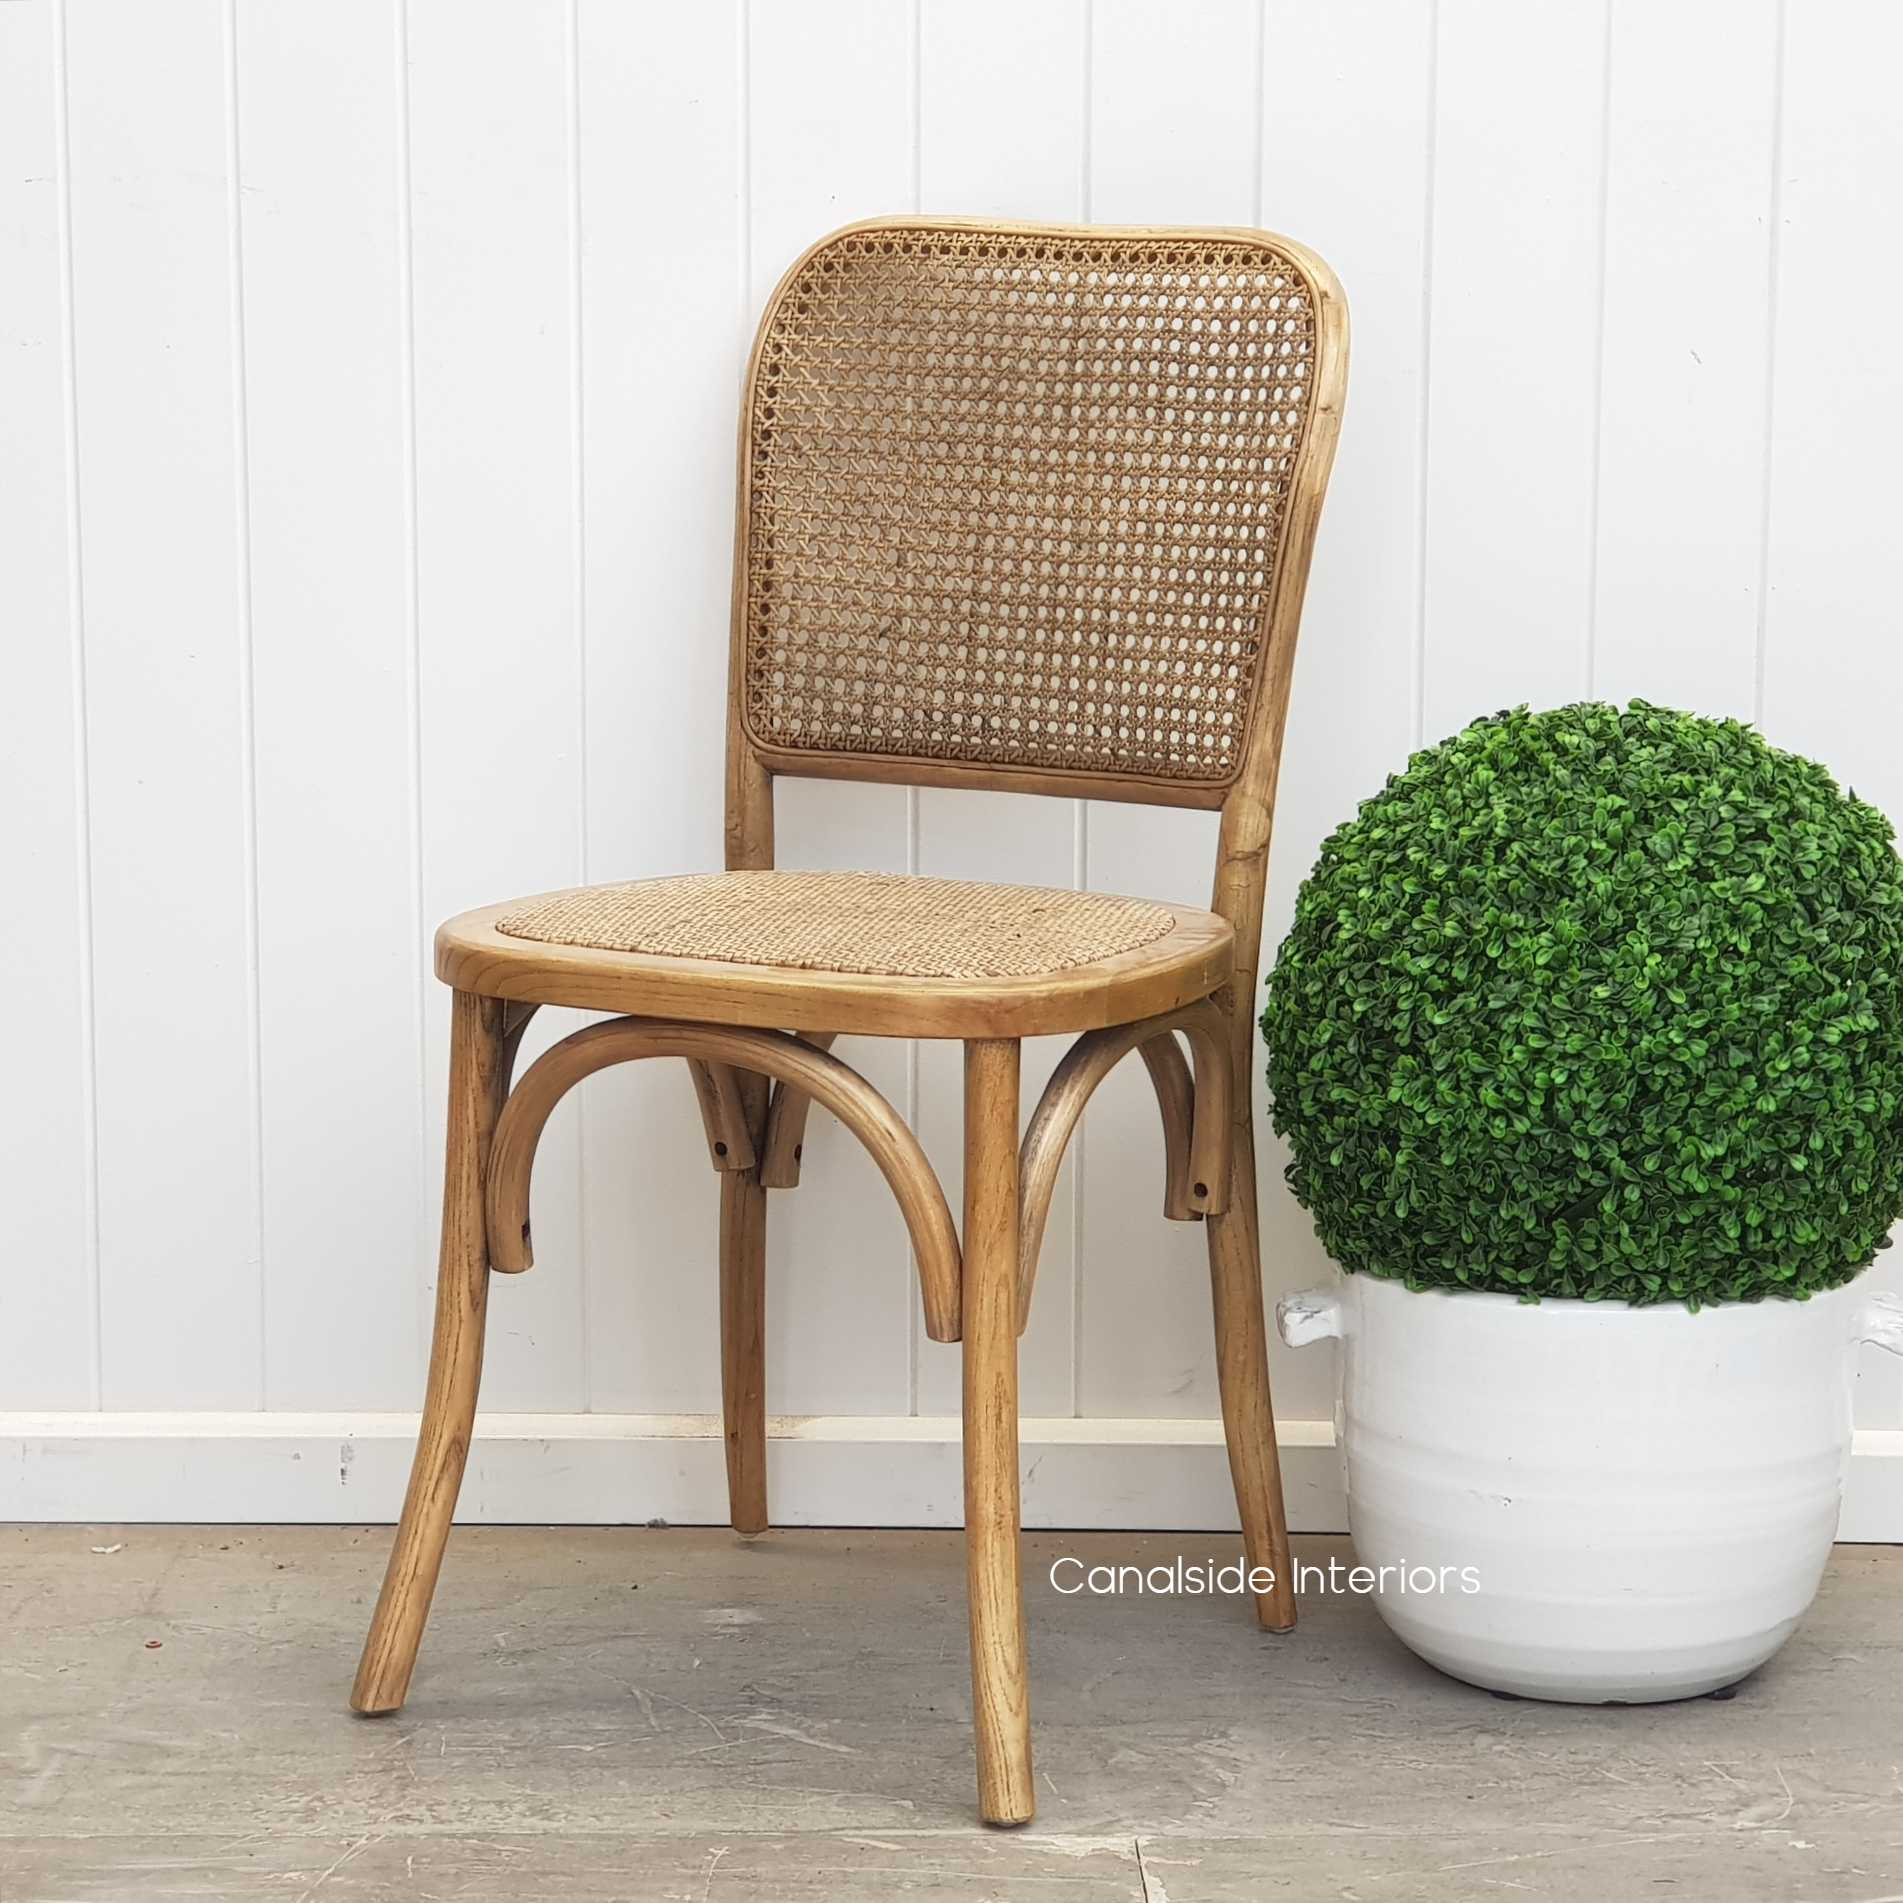 Saxon Bentwood Chair French Oak  Dining, CHAIRS, CAFE FURNITURE, HAMPTONS Style, PLANTATION Style, CHAIRS Dining, CAFE FURNITURE Stools & Chairs, PLANTATION STYLE